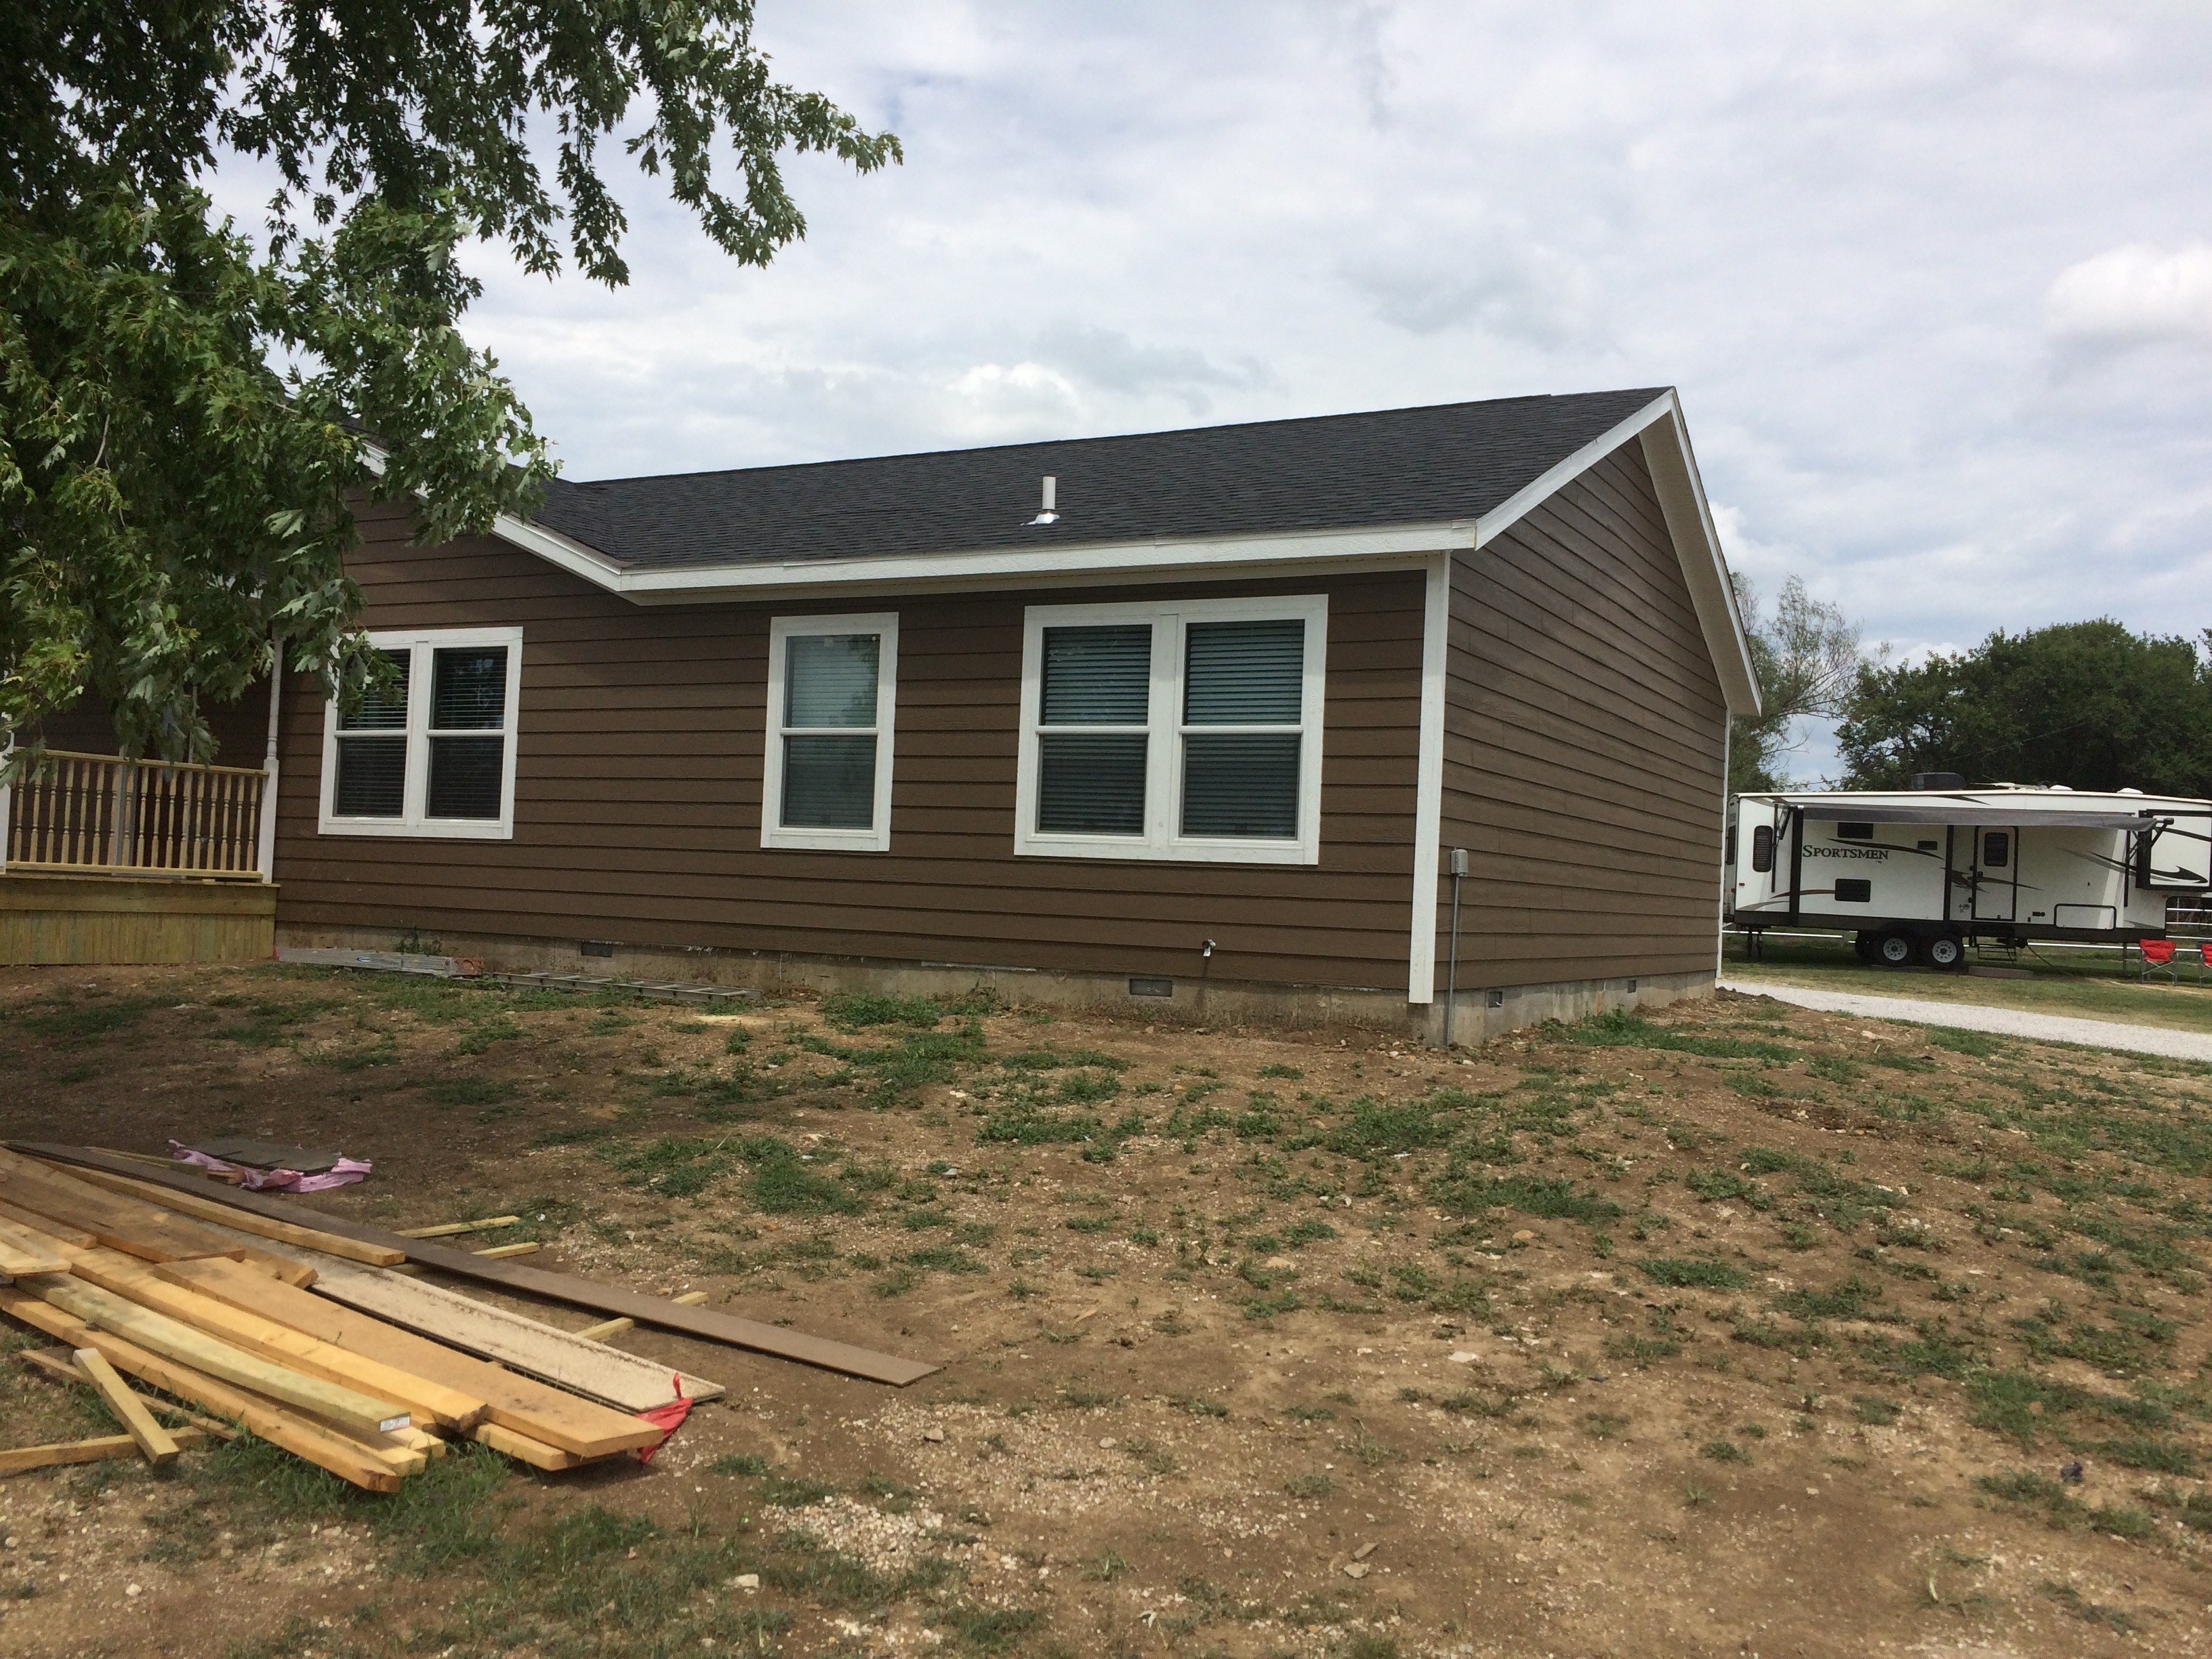 Smartlap siding and 5/12 roof